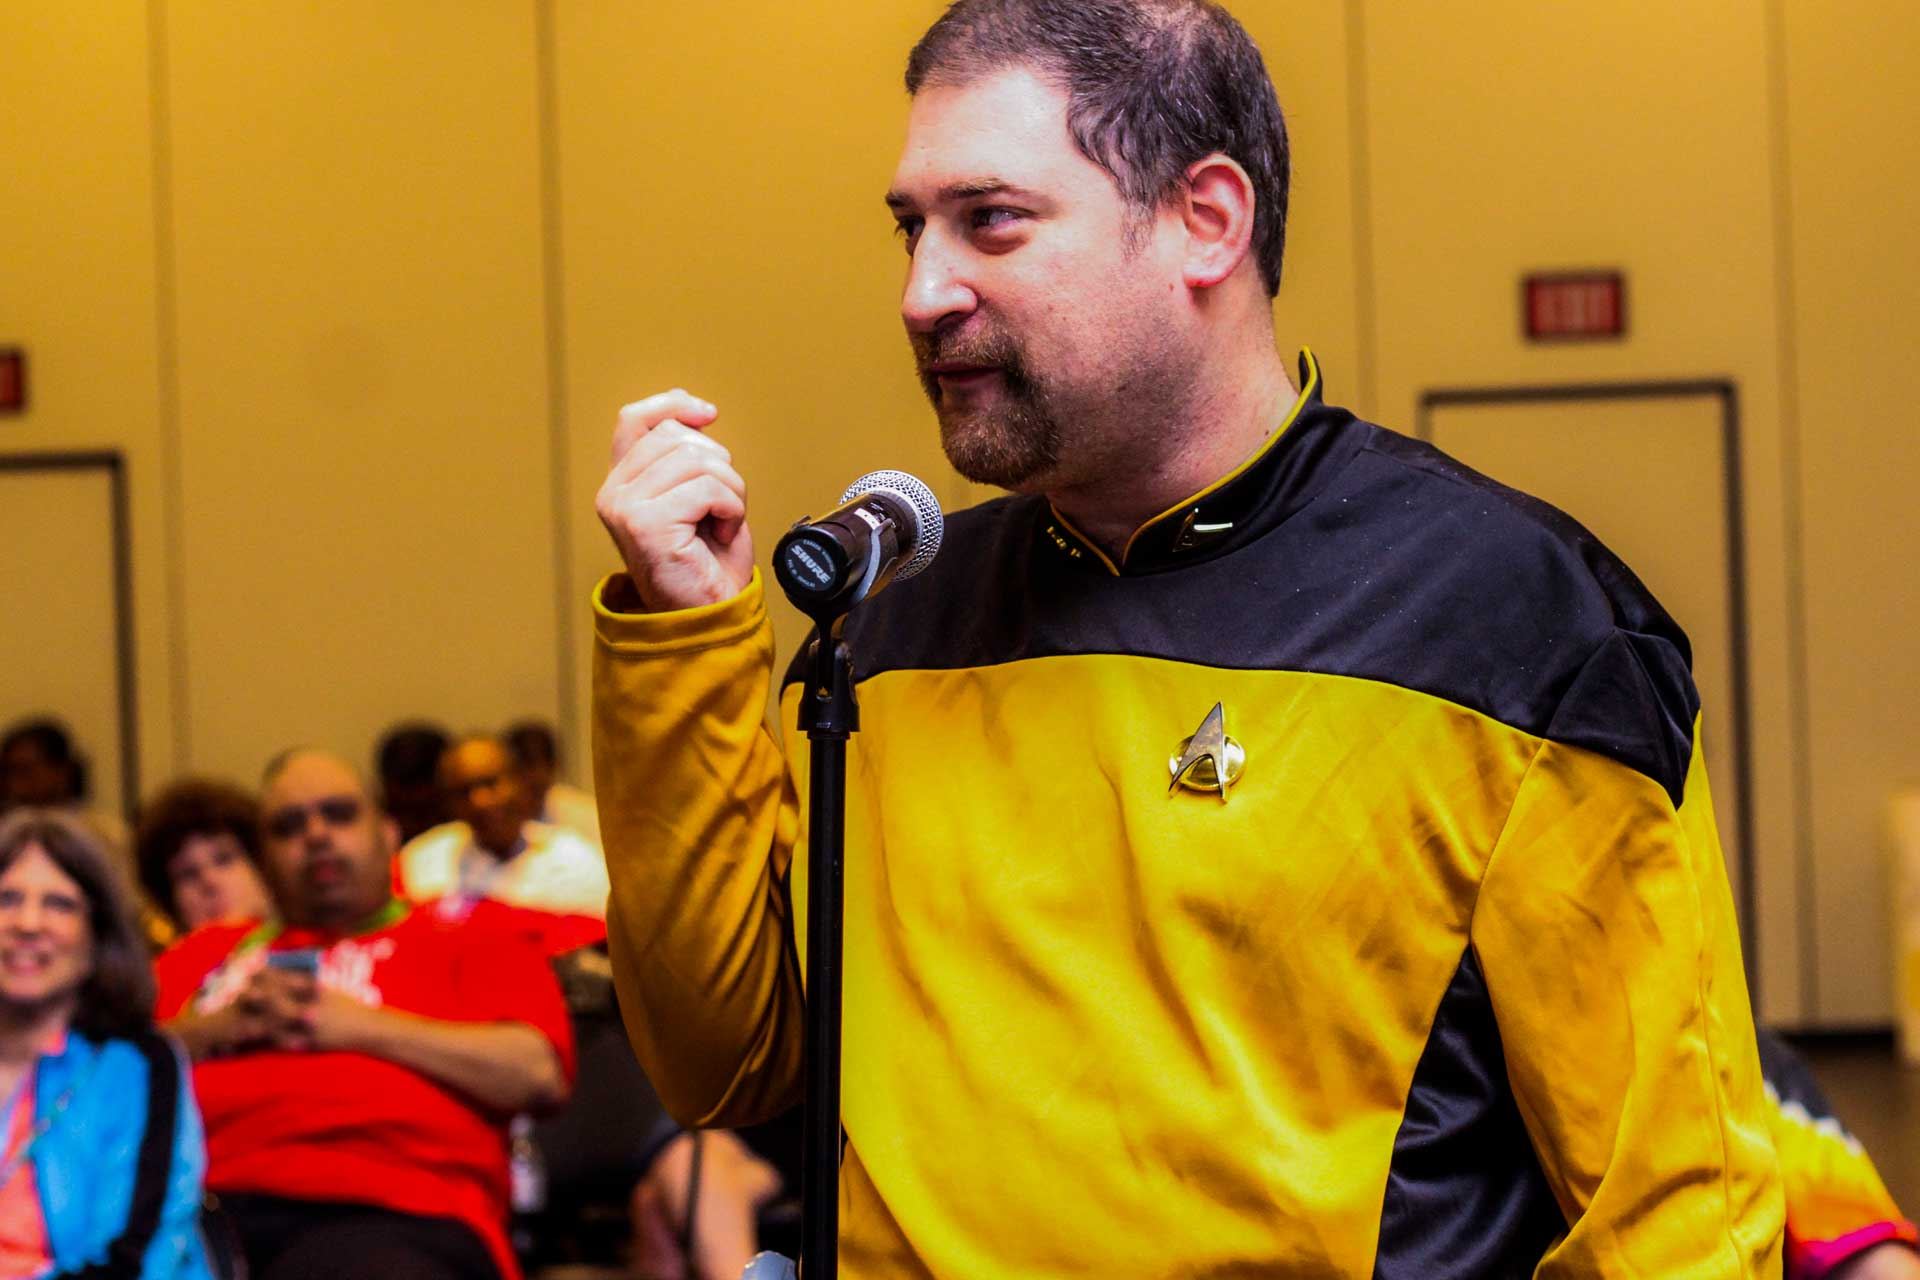 Guy with Start Trek costume talking